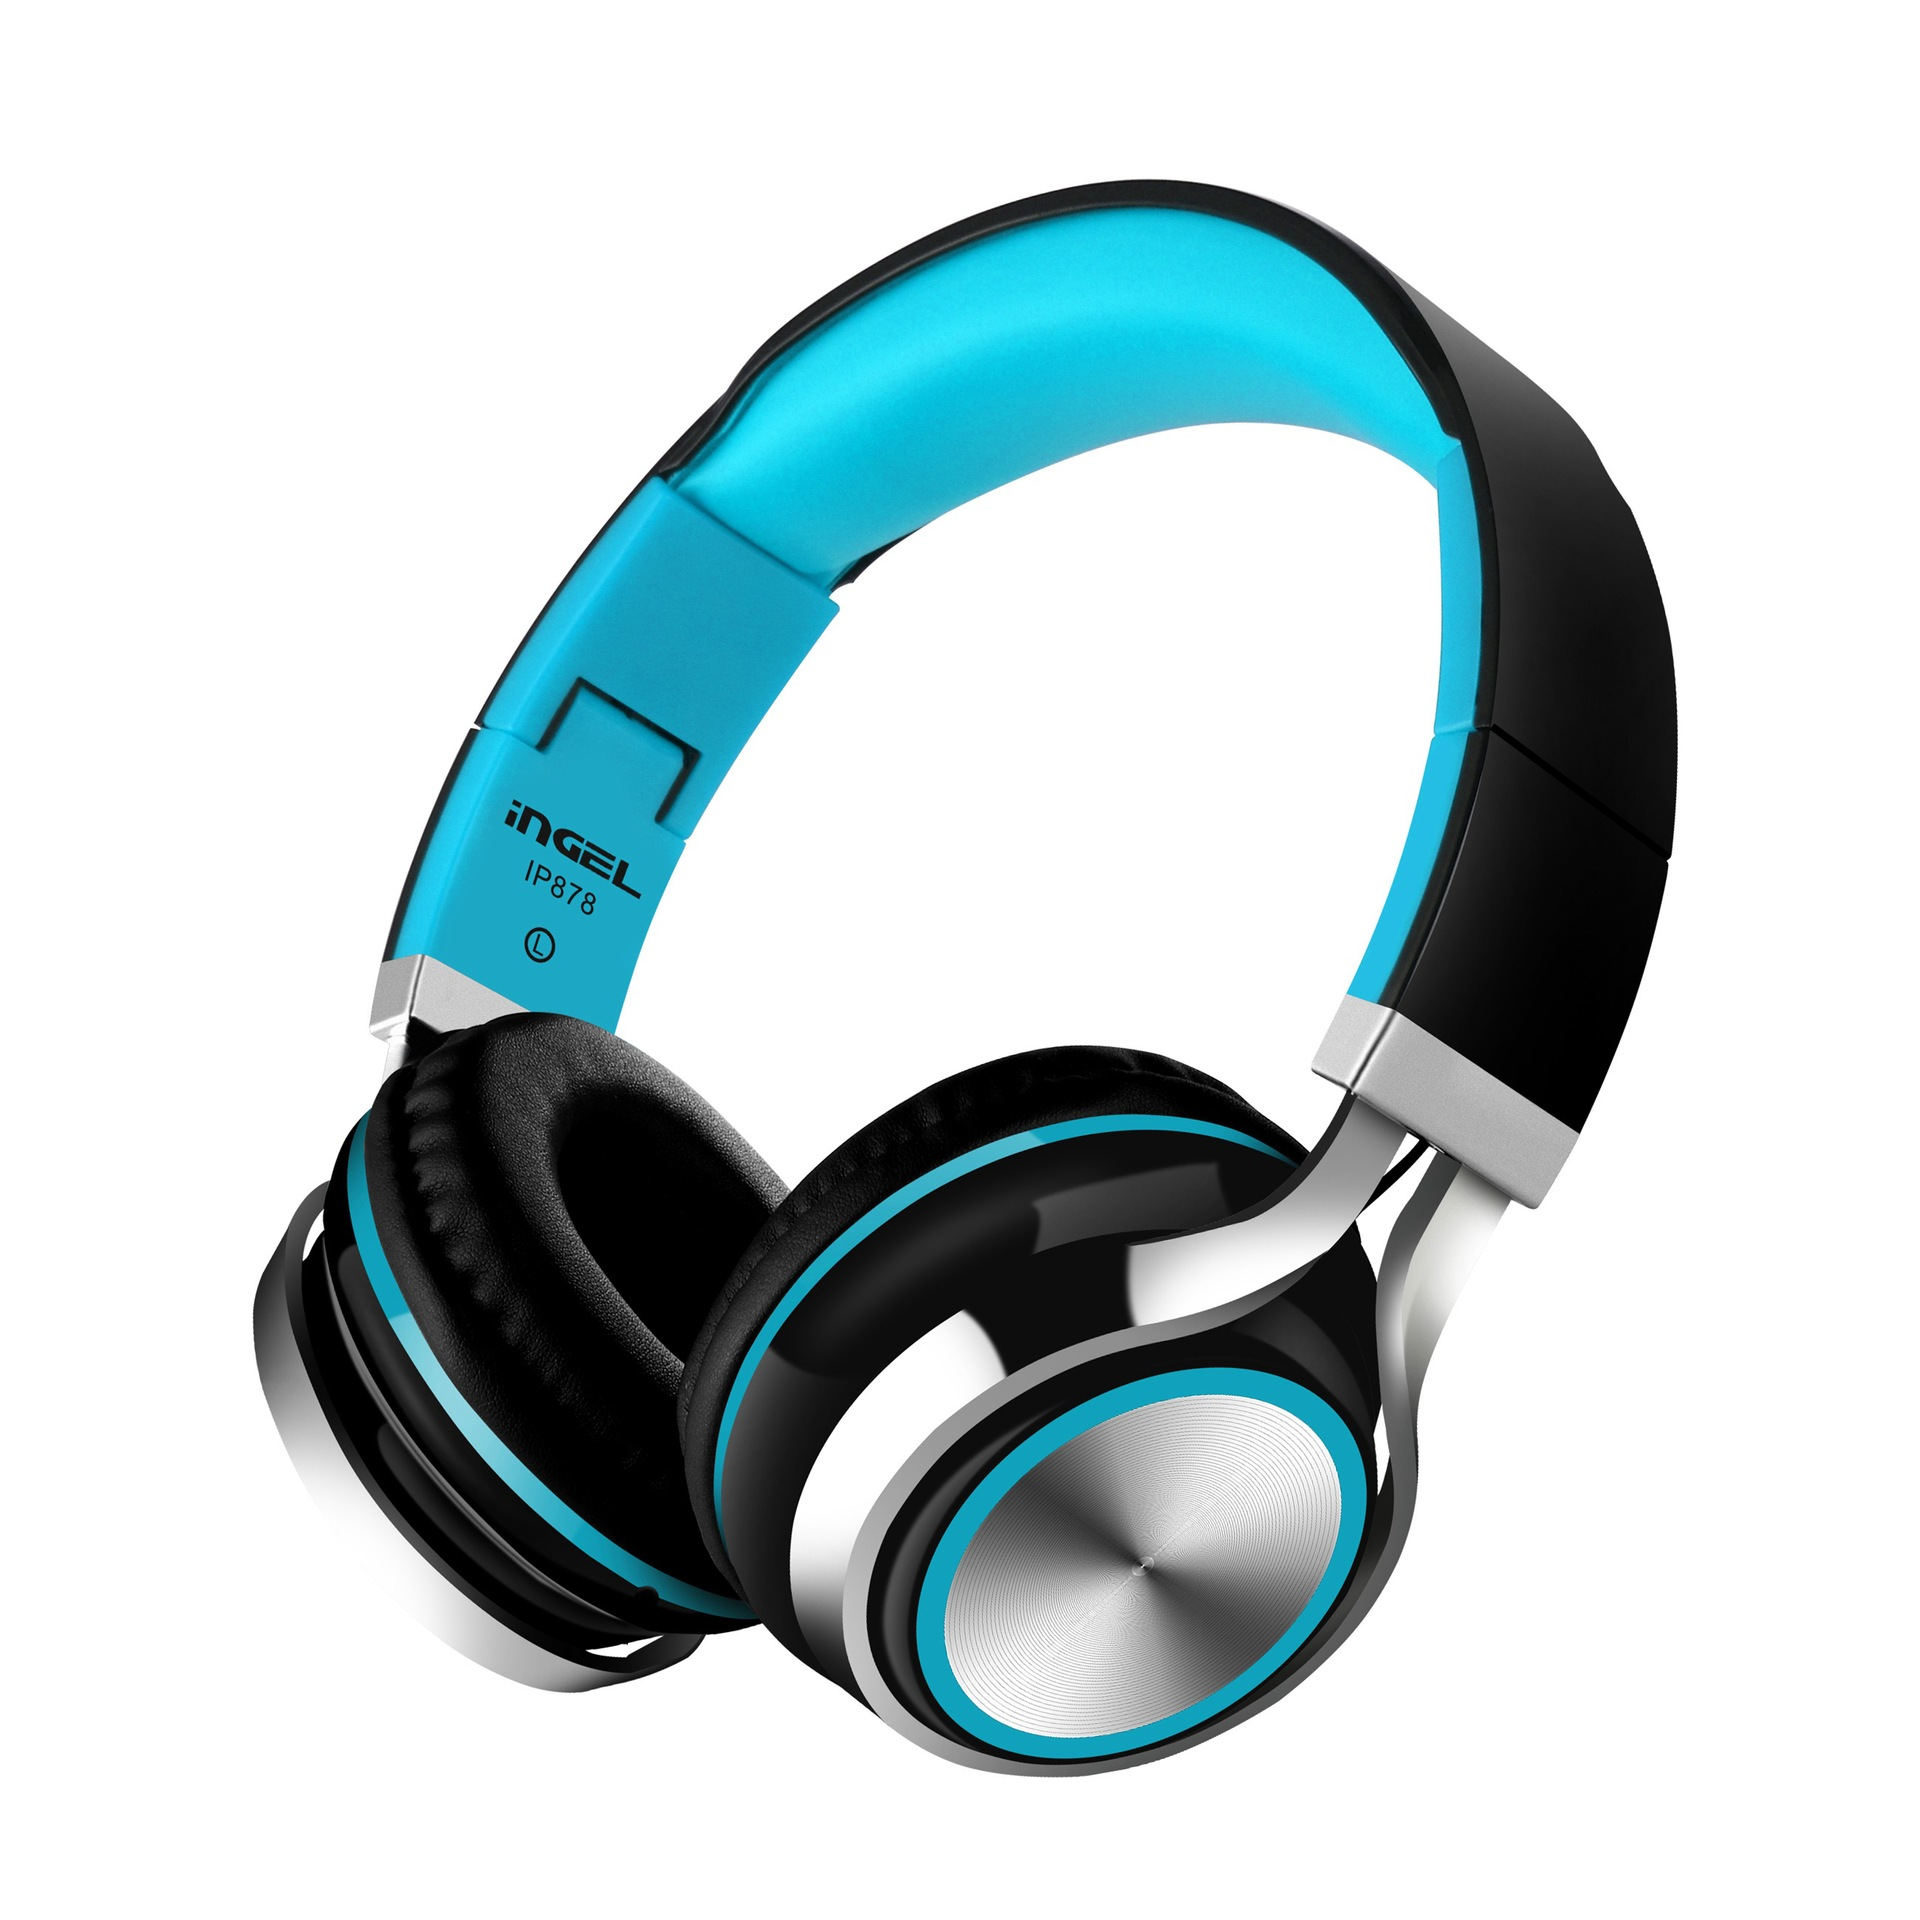 2017 new earphones and headphone mp3 phone stereo bass folding headset Hifi sound effects gaming headset with microphone(China (Mainland))